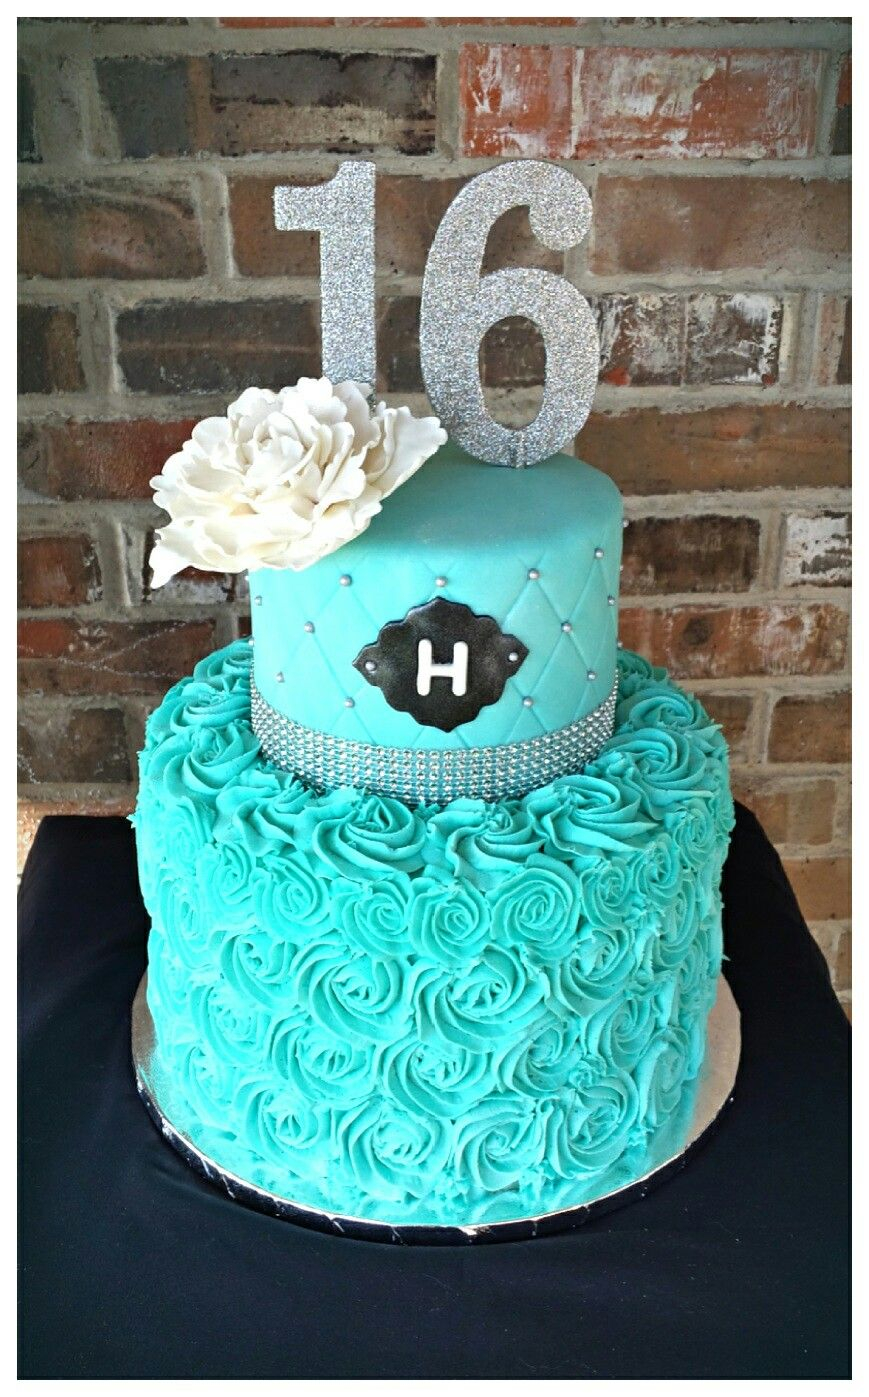 21+ Great Image of Teal Birthday Cakes